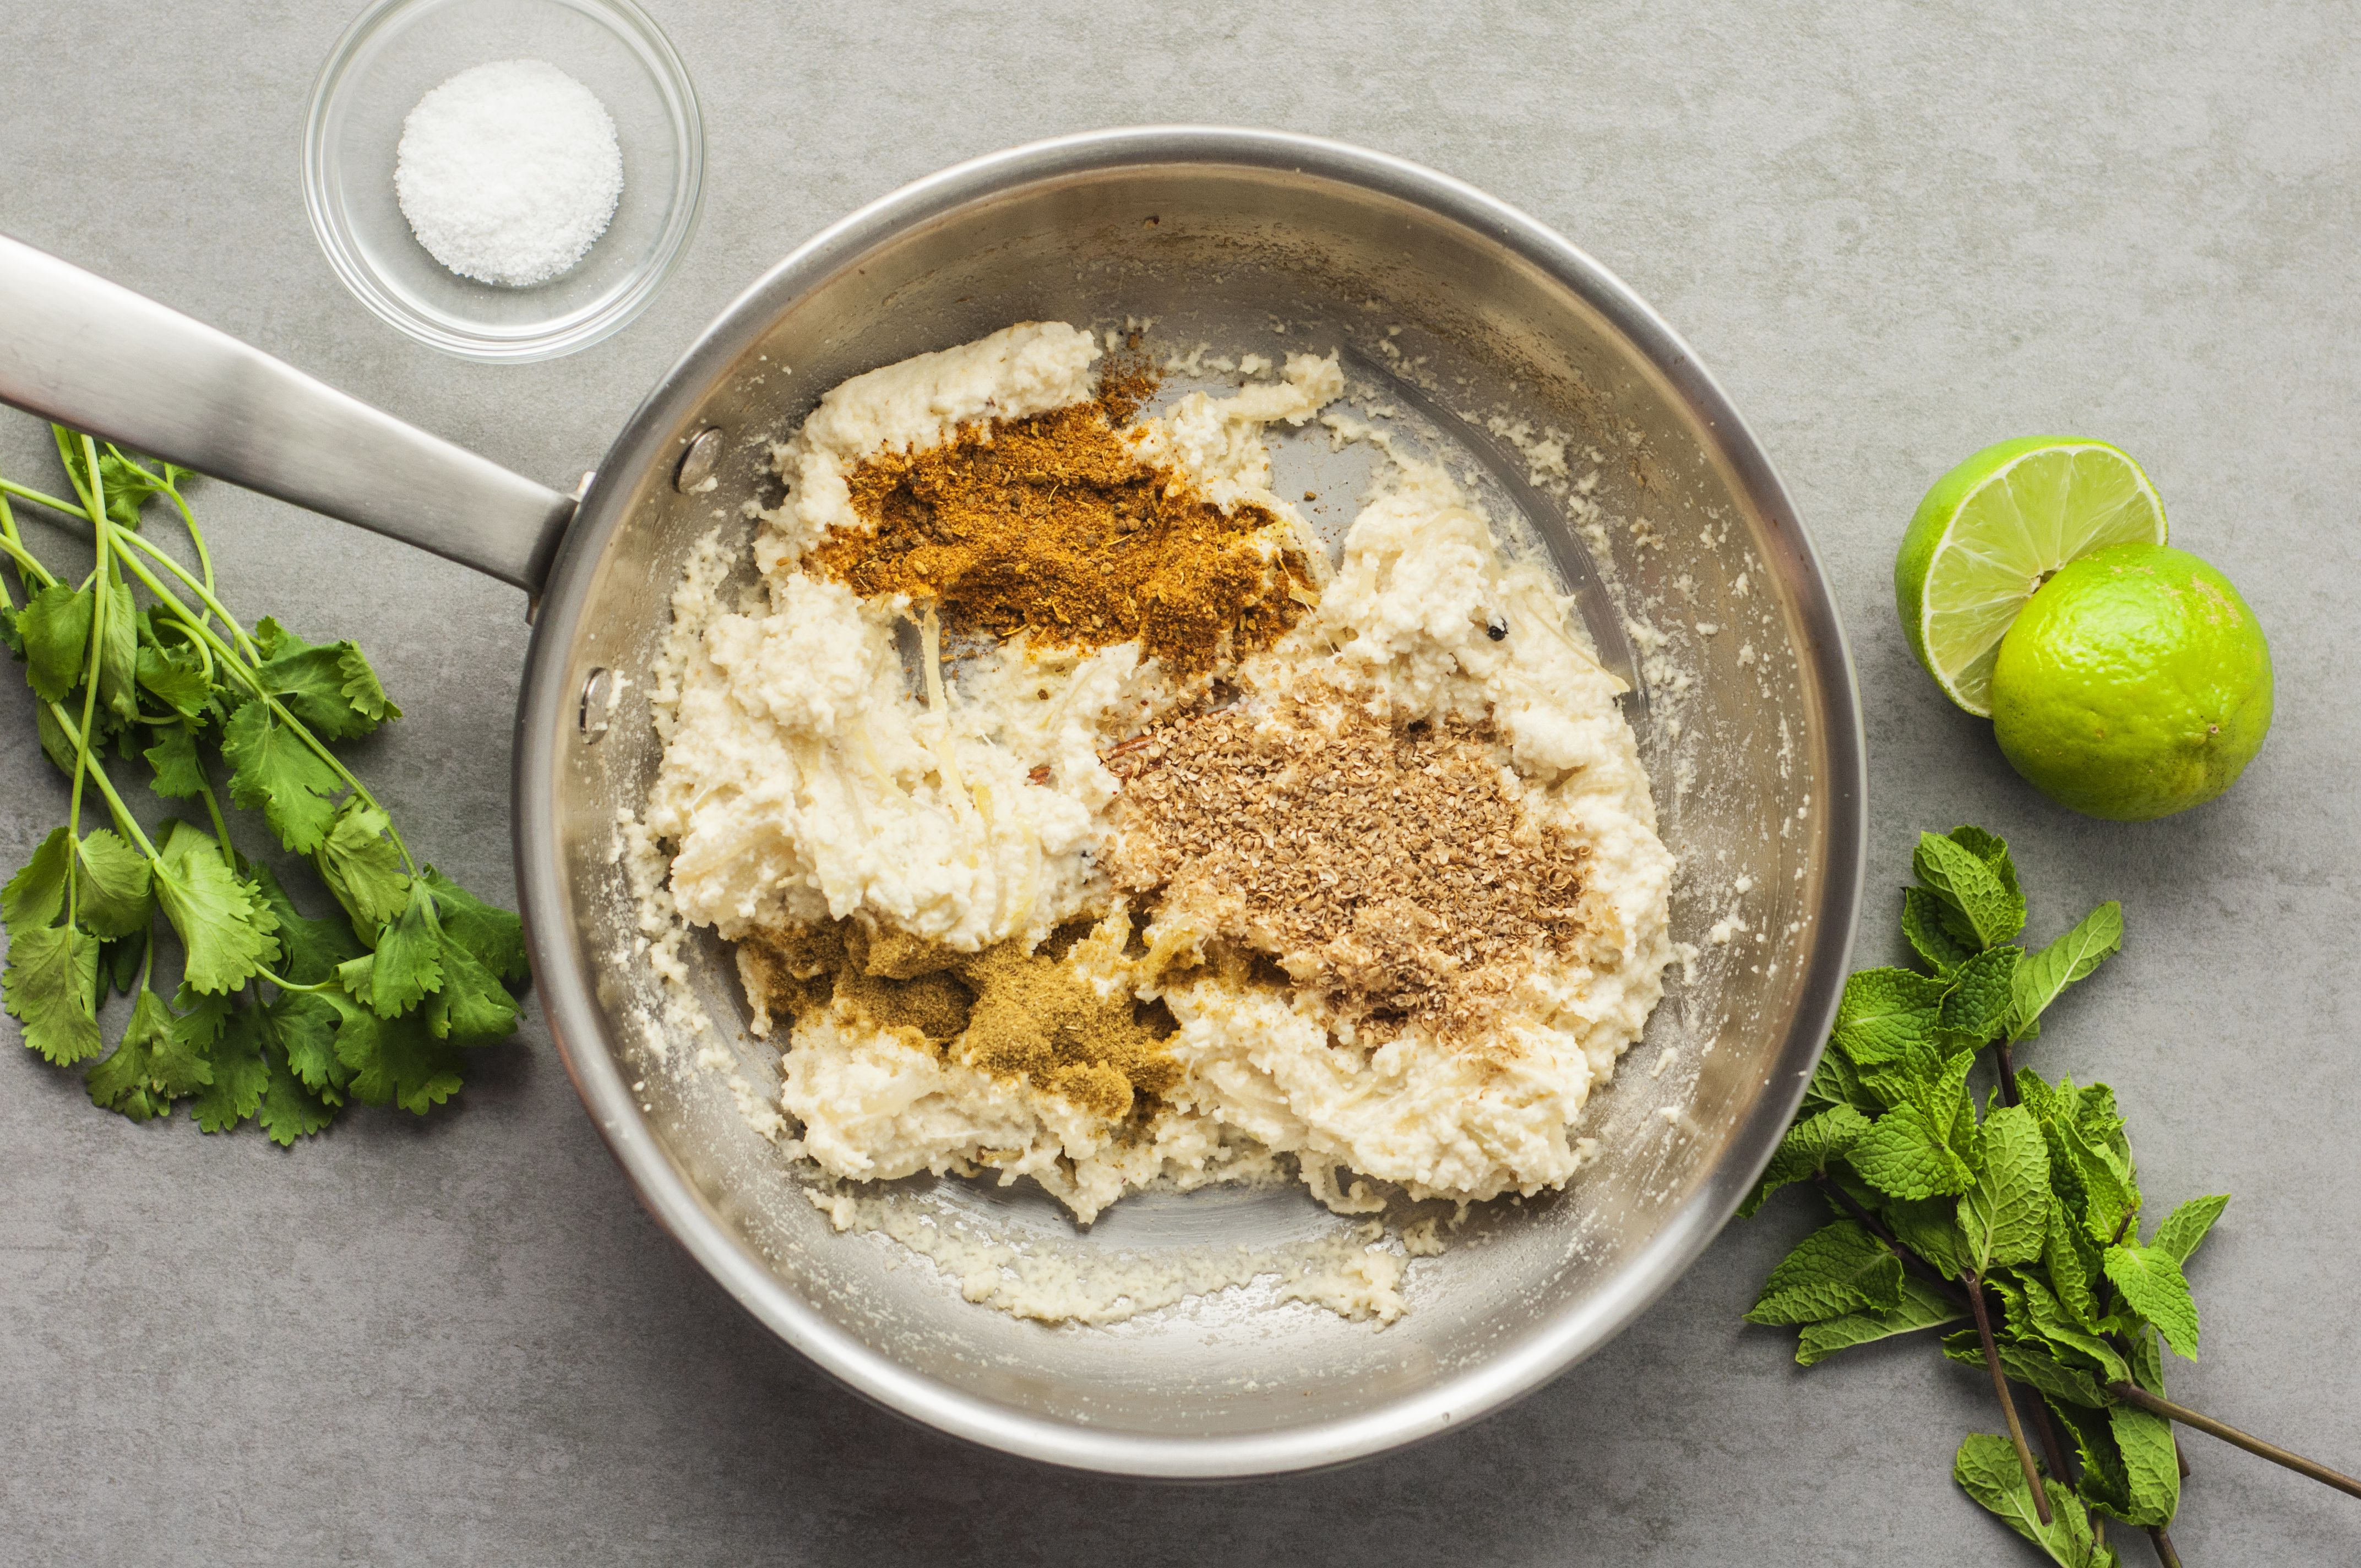 Add spice powders to mixture